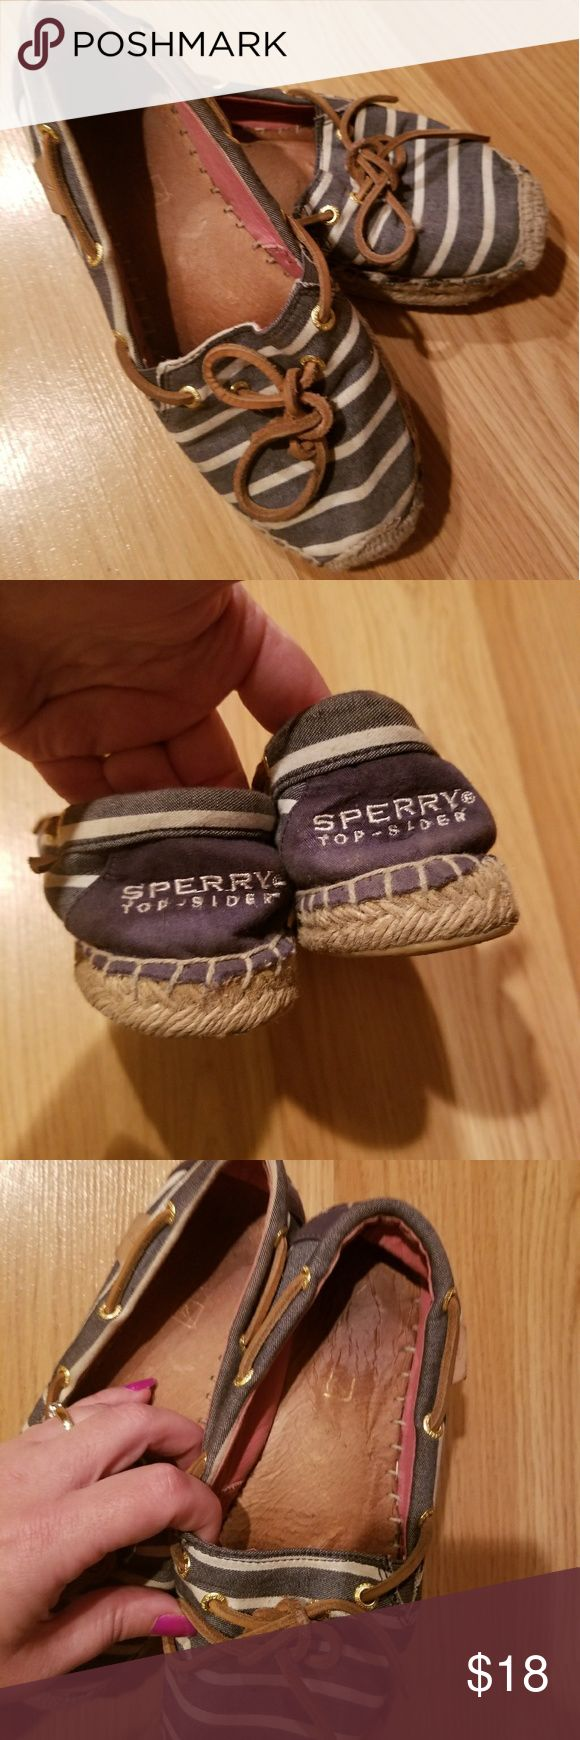 Sperry Topsider Espadrilles Blue with white stripes. Insoles show lots of wear and some wear shown on bottoms but outside of shoes are very clean and in good shape. Sperry Top-Sider Shoes Espadrilles